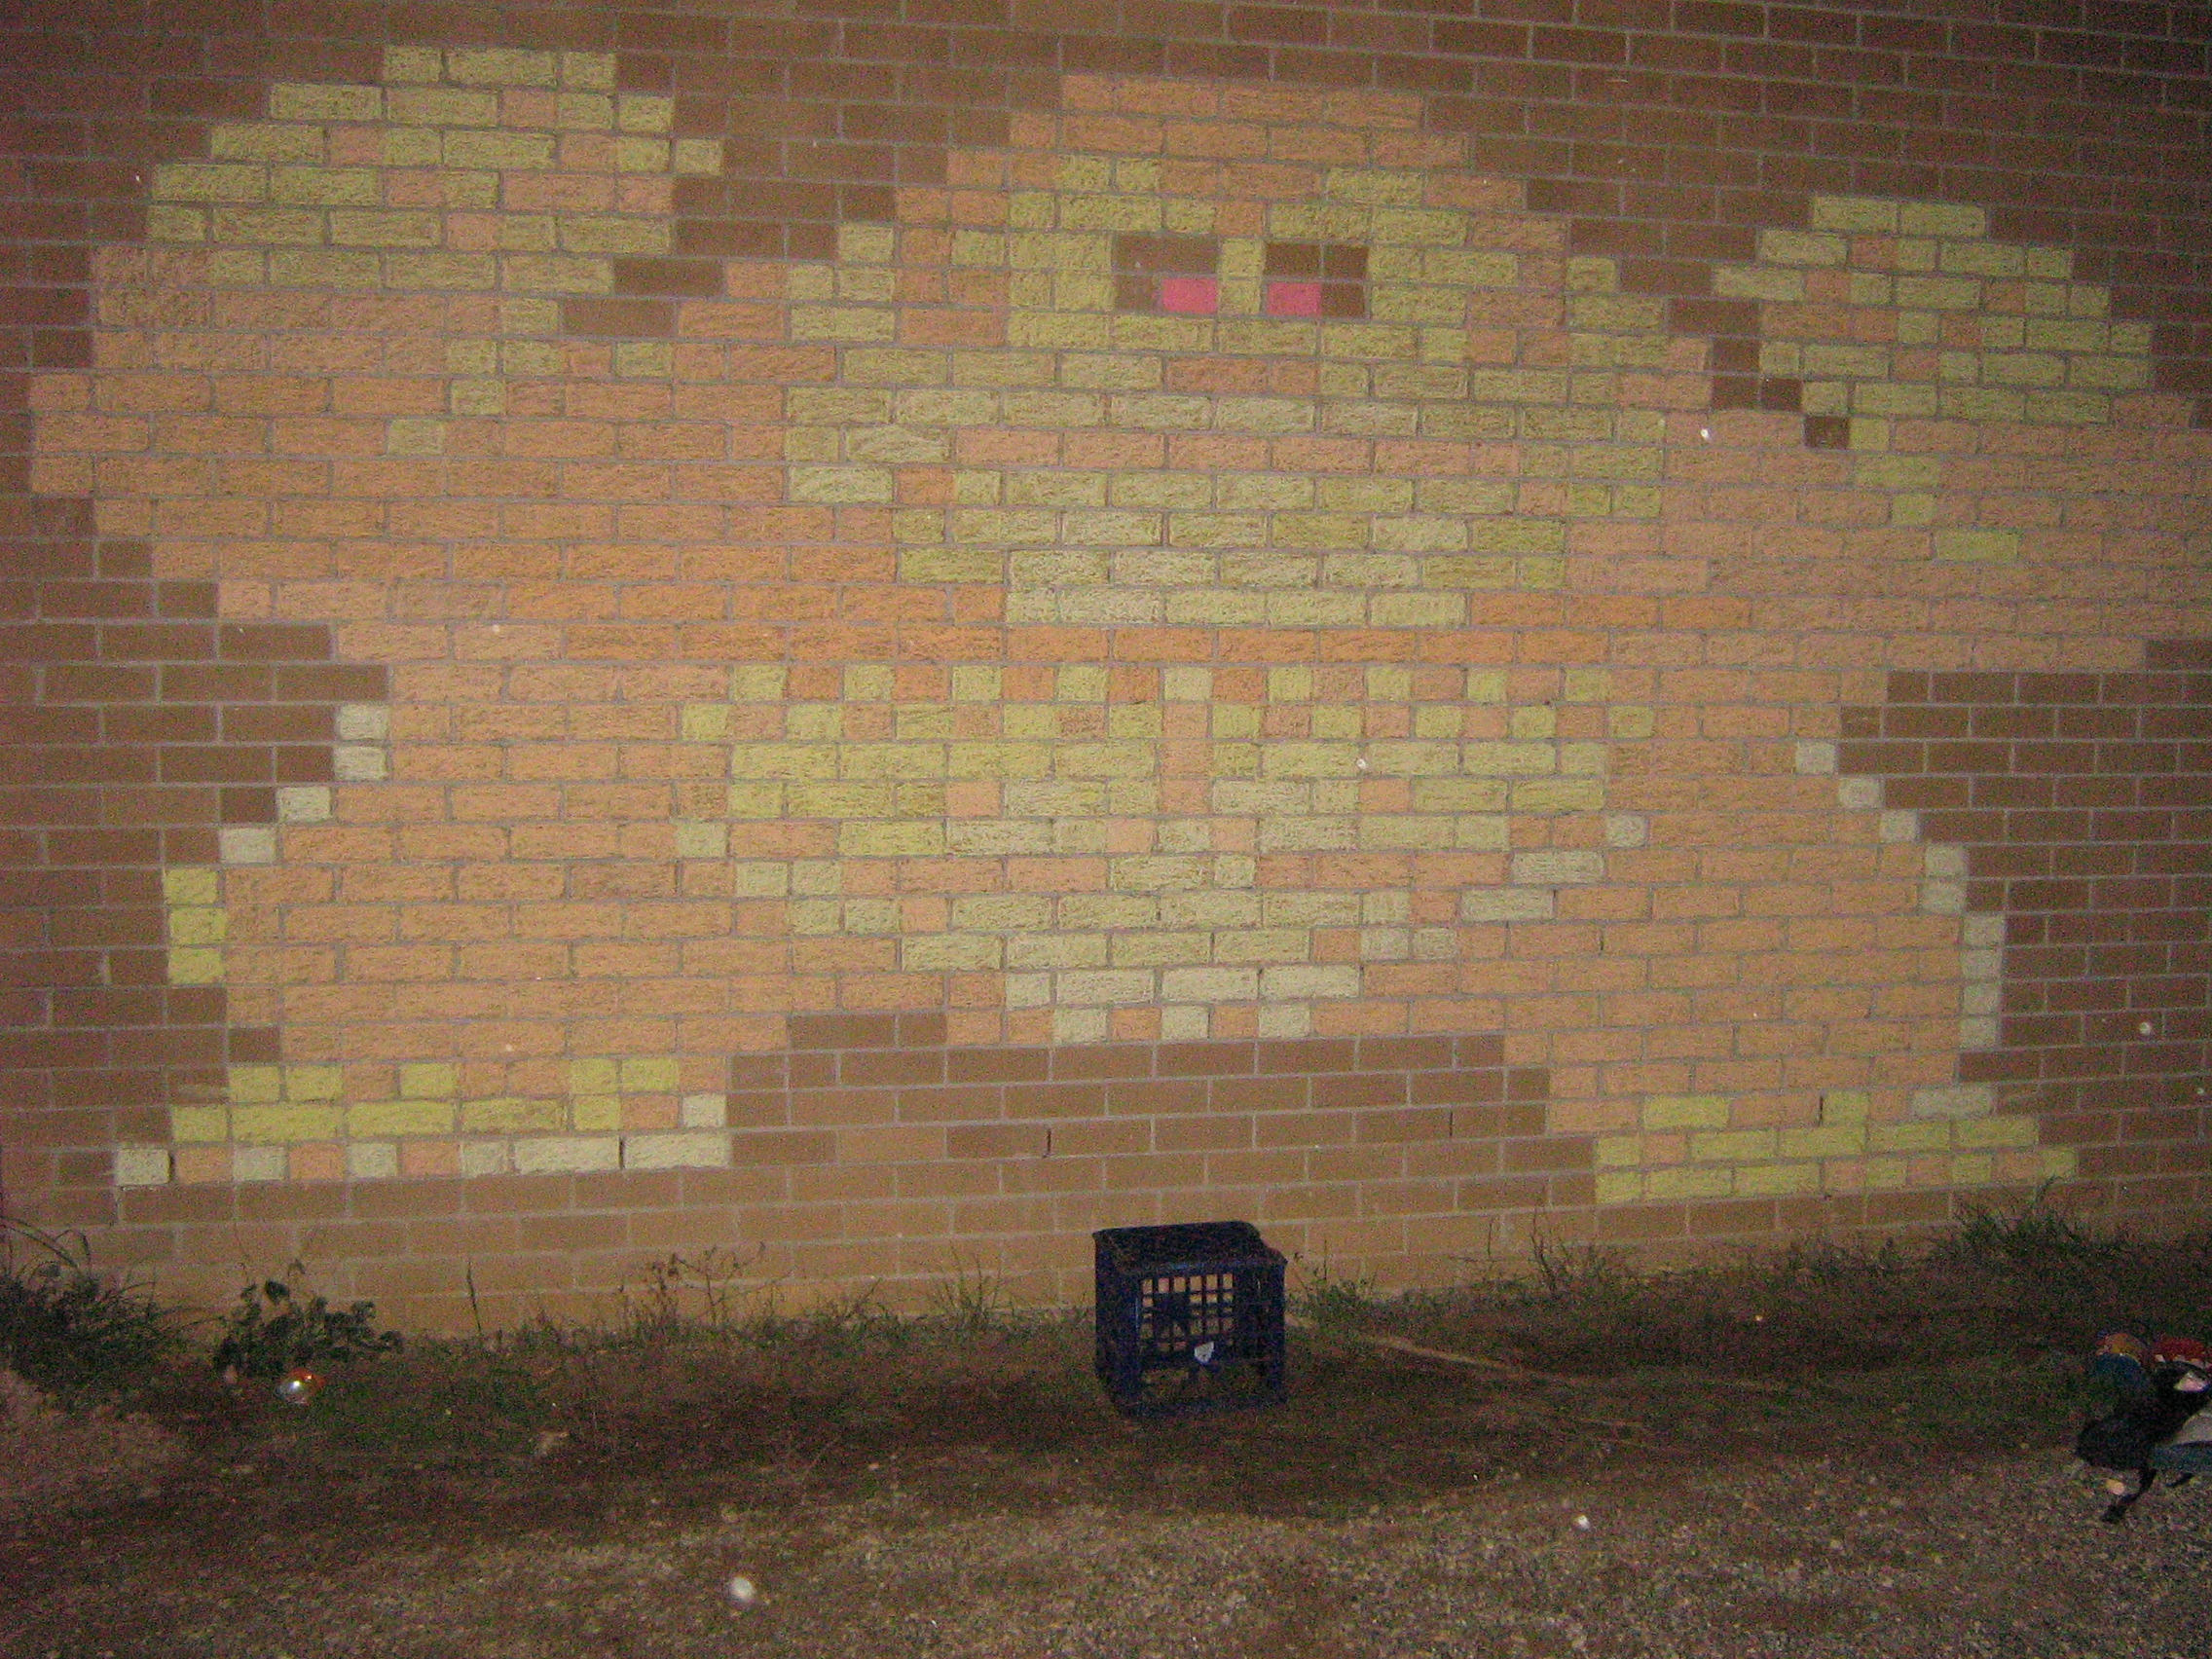 Chalk Donkey Kong by liverspoon